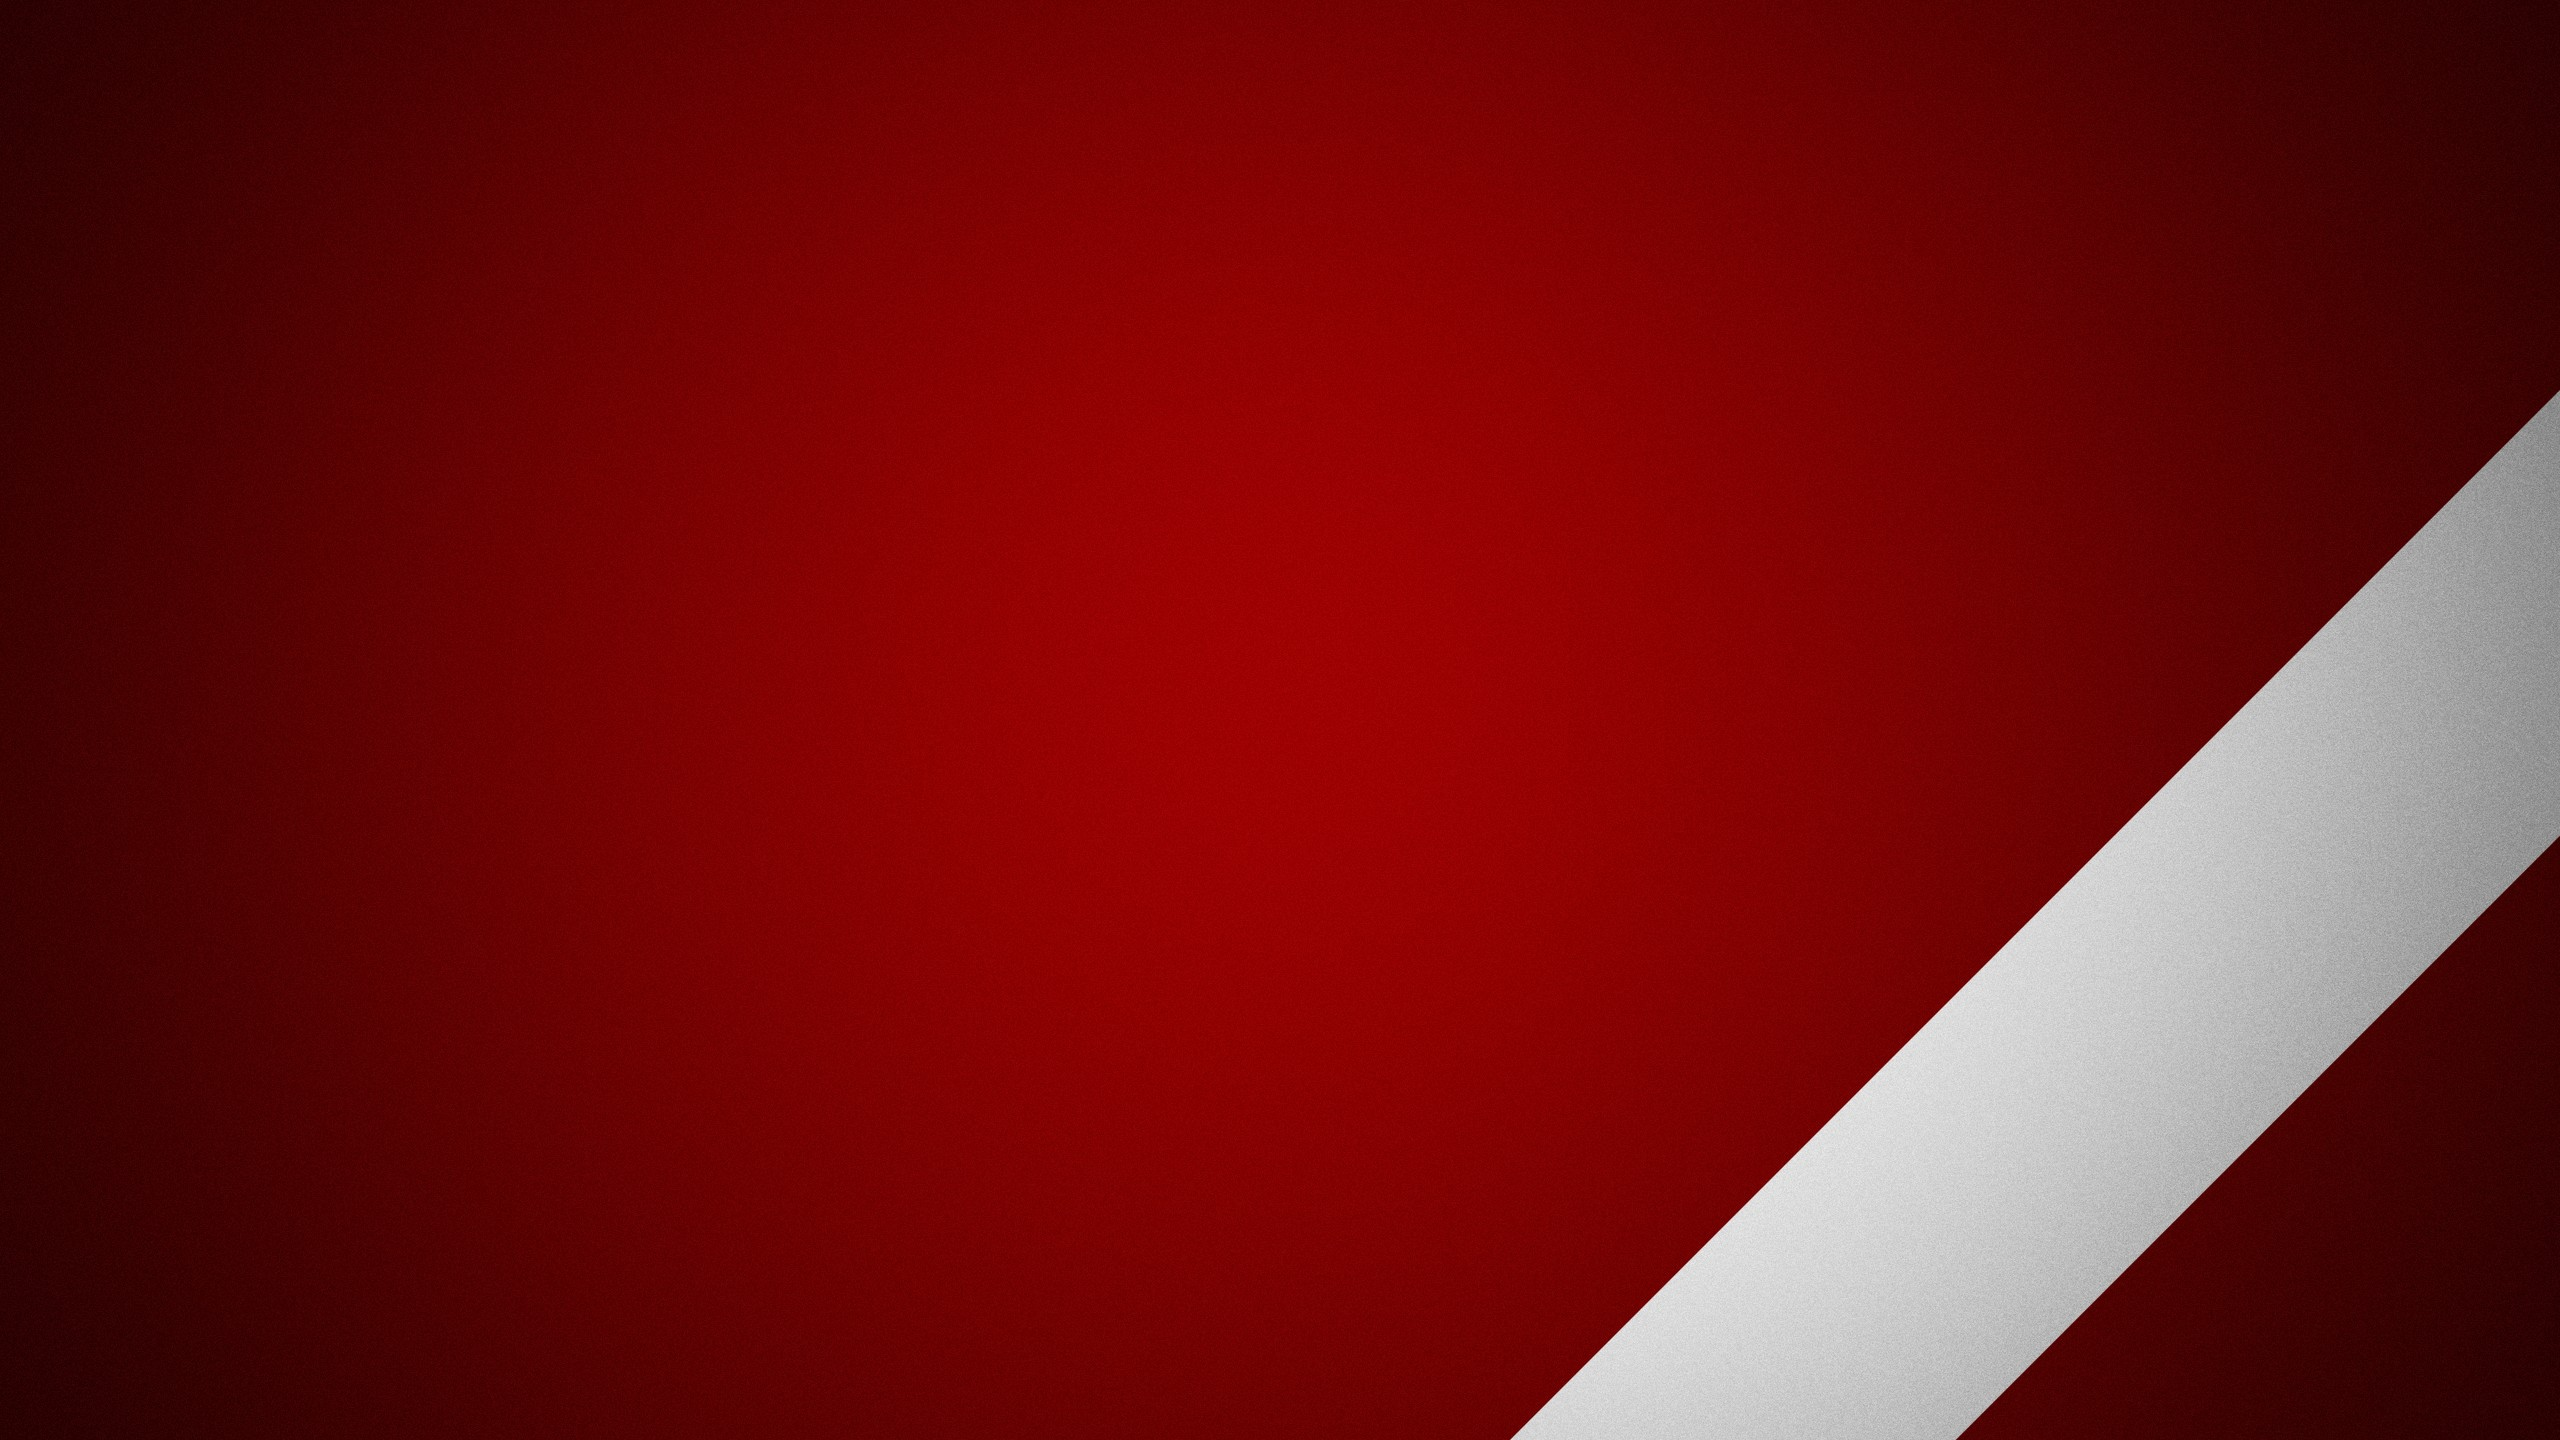 Red White Wallpaper 2560x1440 Red White 2560x1440